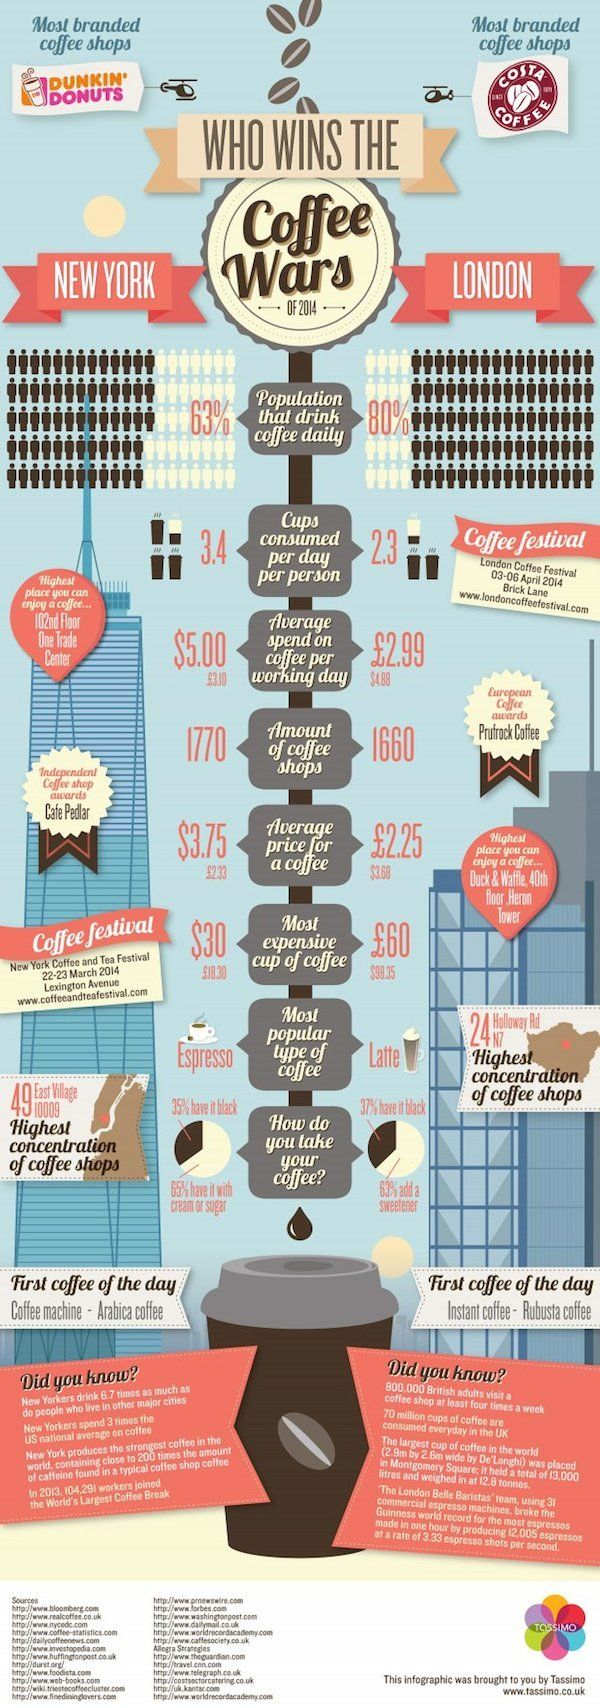 Infographic: The Coffee Wars Between New York And London - DesignTAXI.com